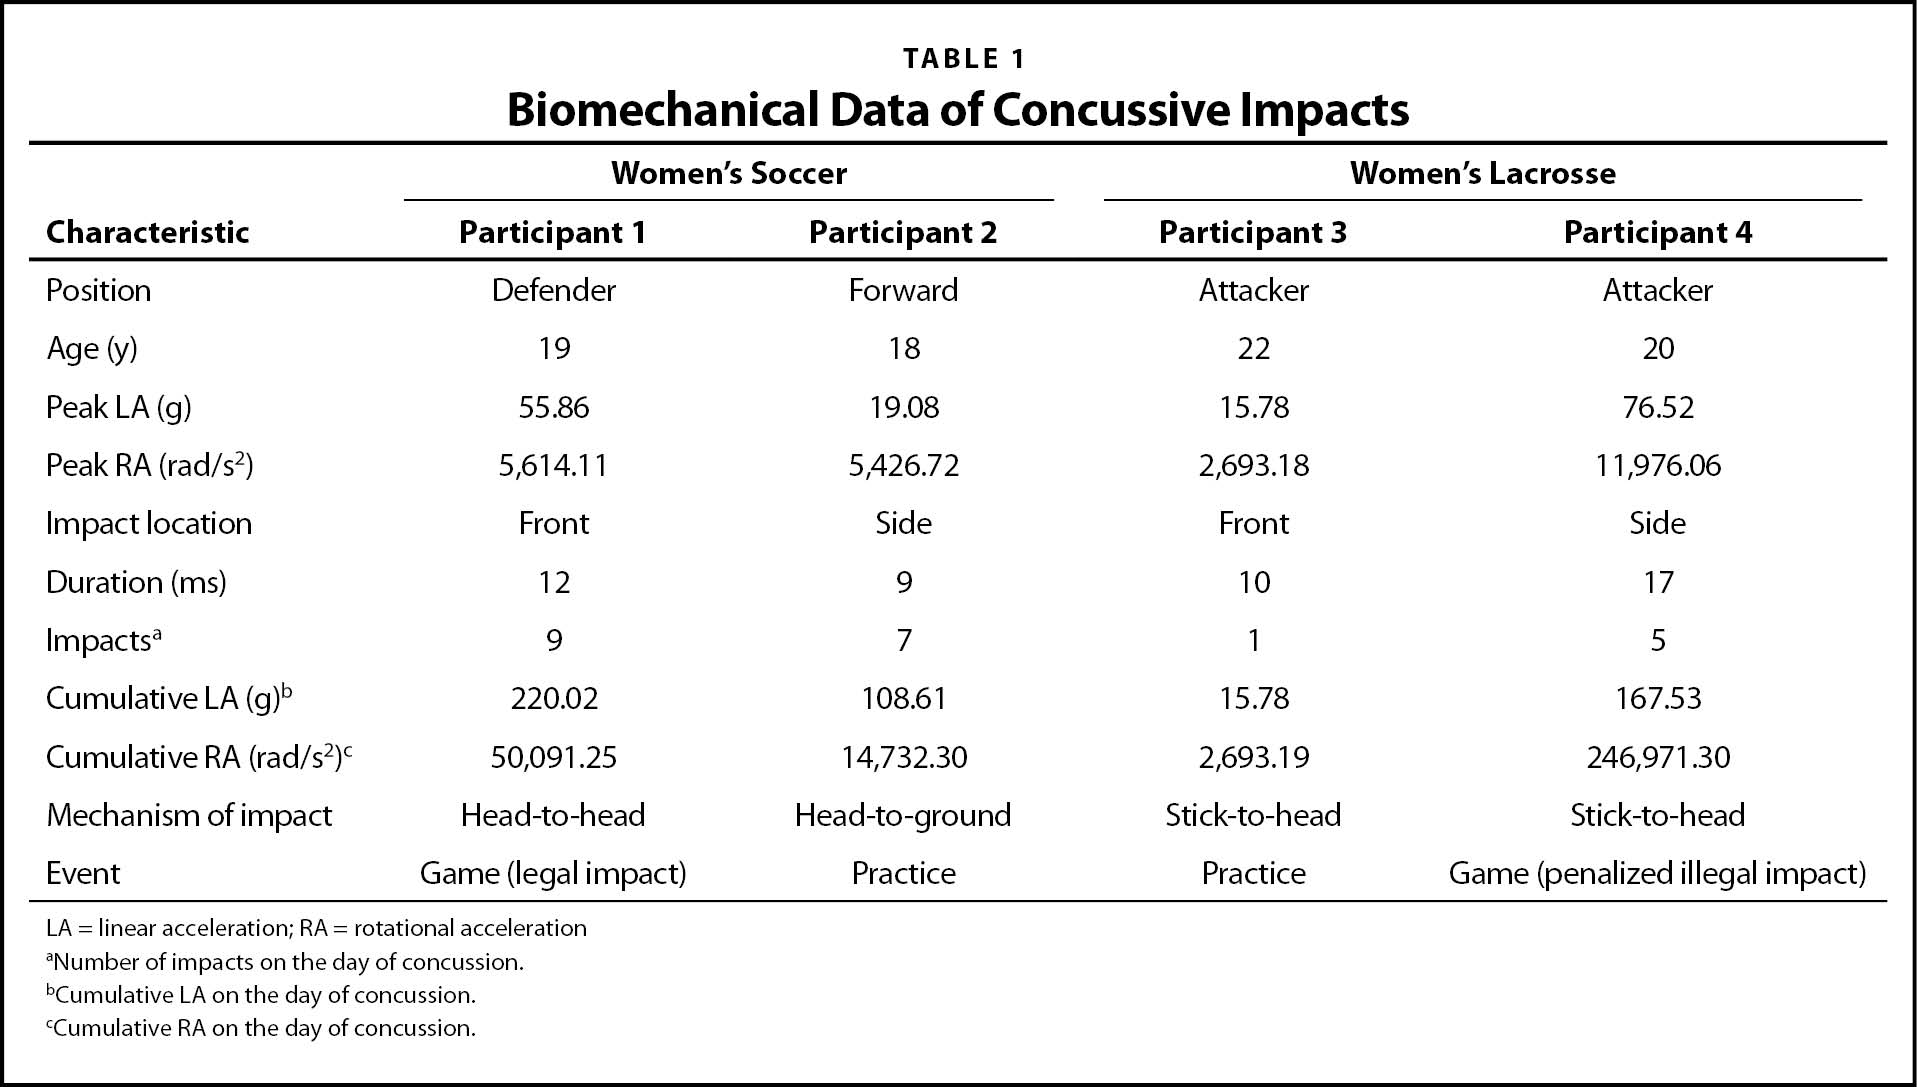 Biomechanical Data of Concussive Impacts